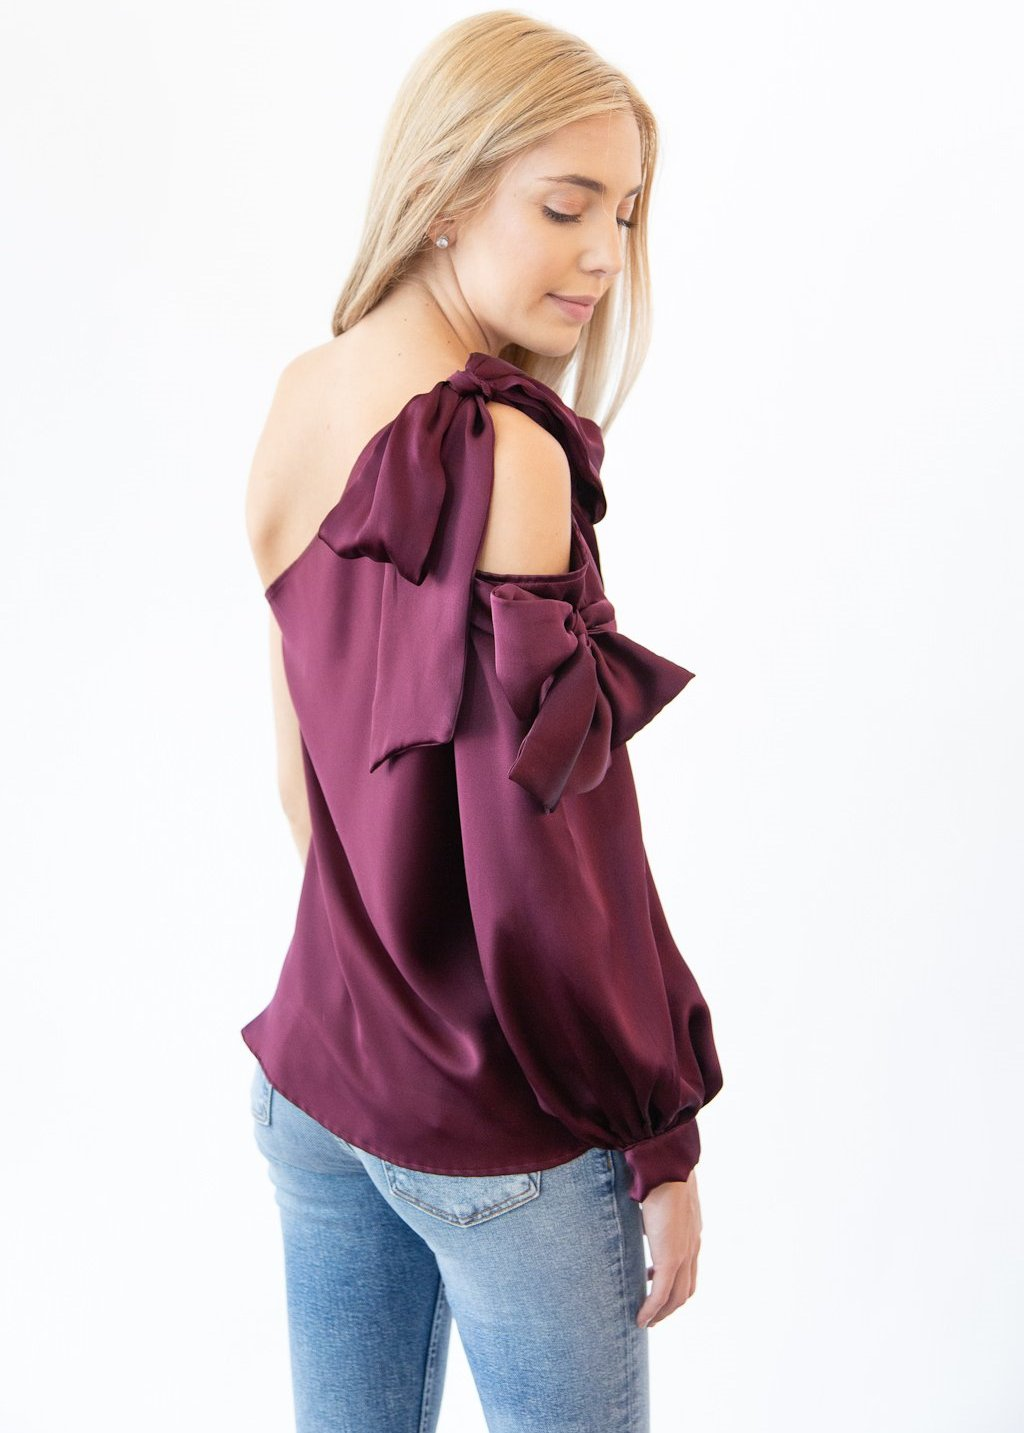 ELIZABETH One Shoulder Top - Shop Tula